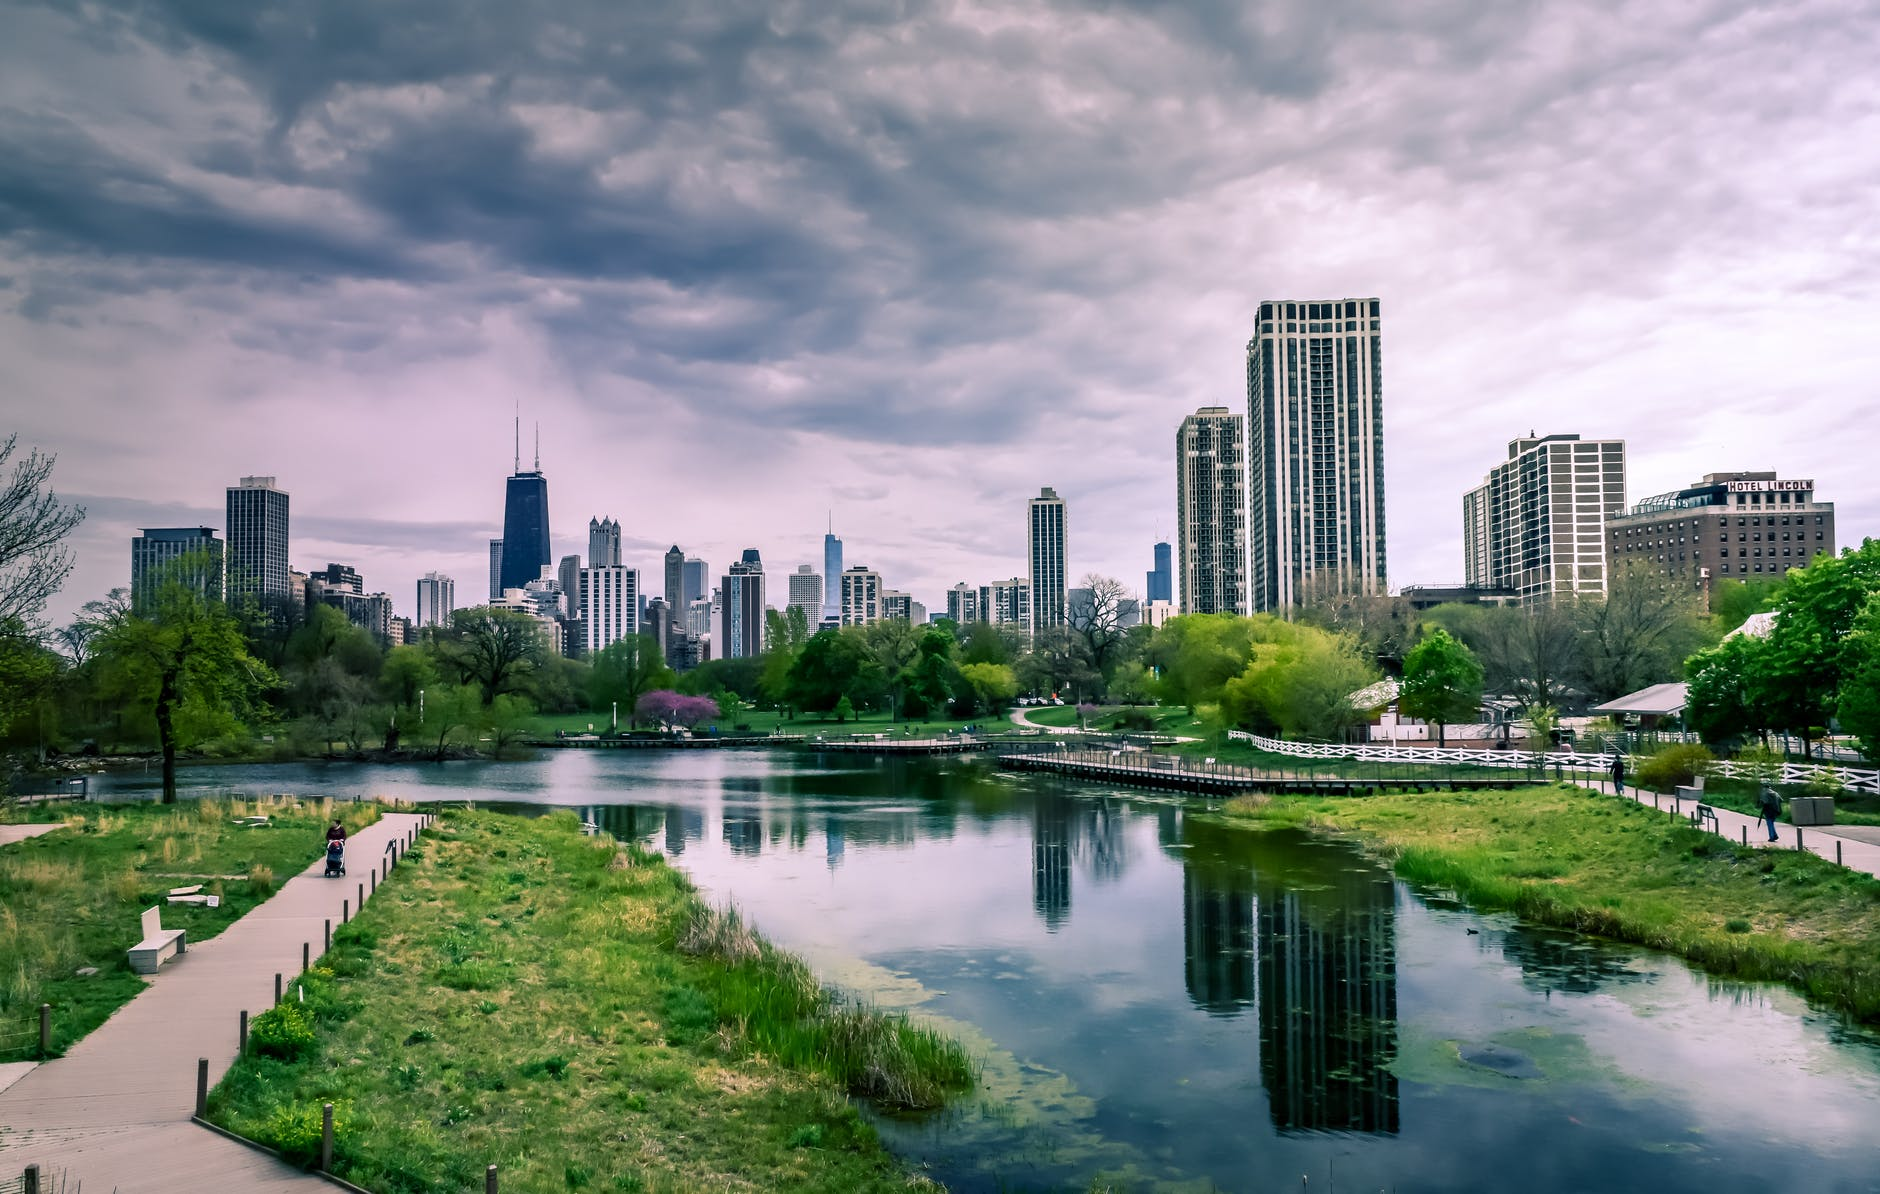 Top 10 Cleanest Cities in the World in 2021